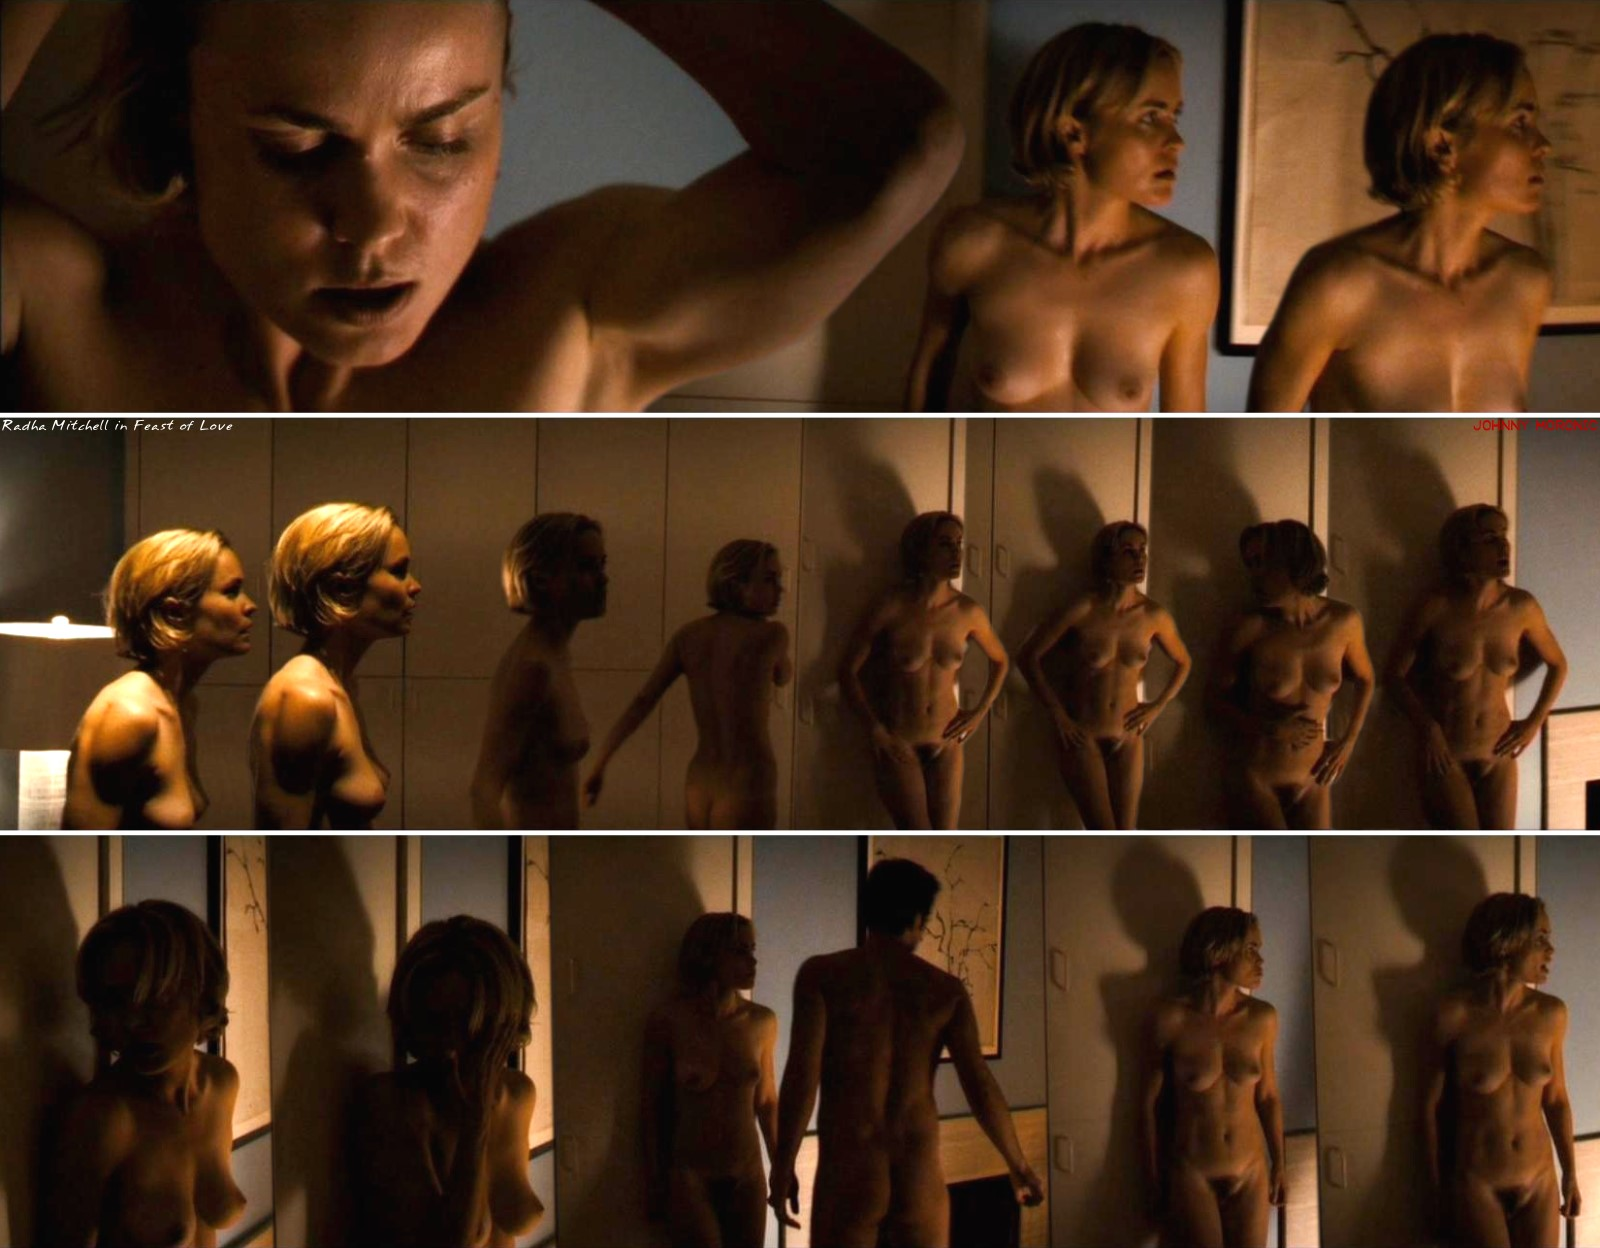 http://pictures.platinum-celebs.com/radha-mitchell-nude-photo.jpg